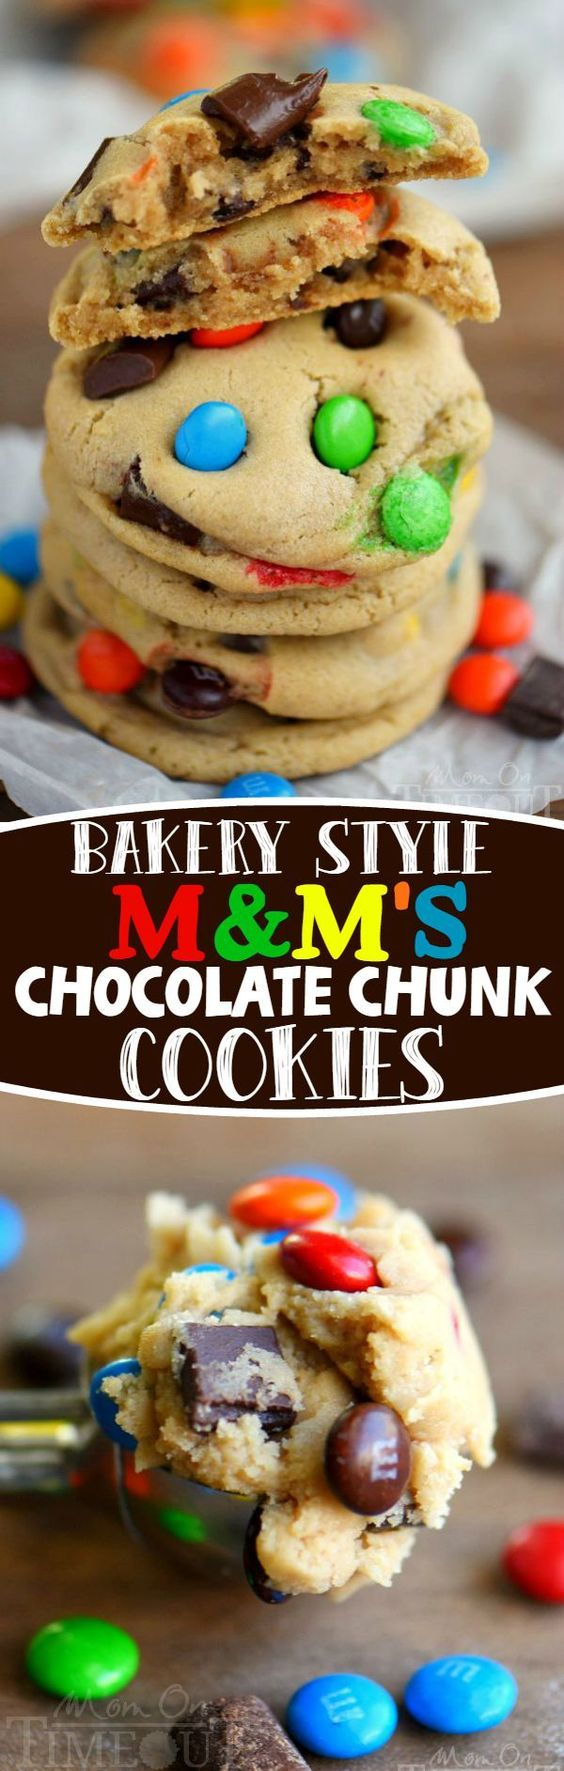 These Bakery Style M&M's and Chocolate Chunk Cookies are my new favorite thing. Incredibly soft, infinitely chewy and easy as can be. You need to give these a try!